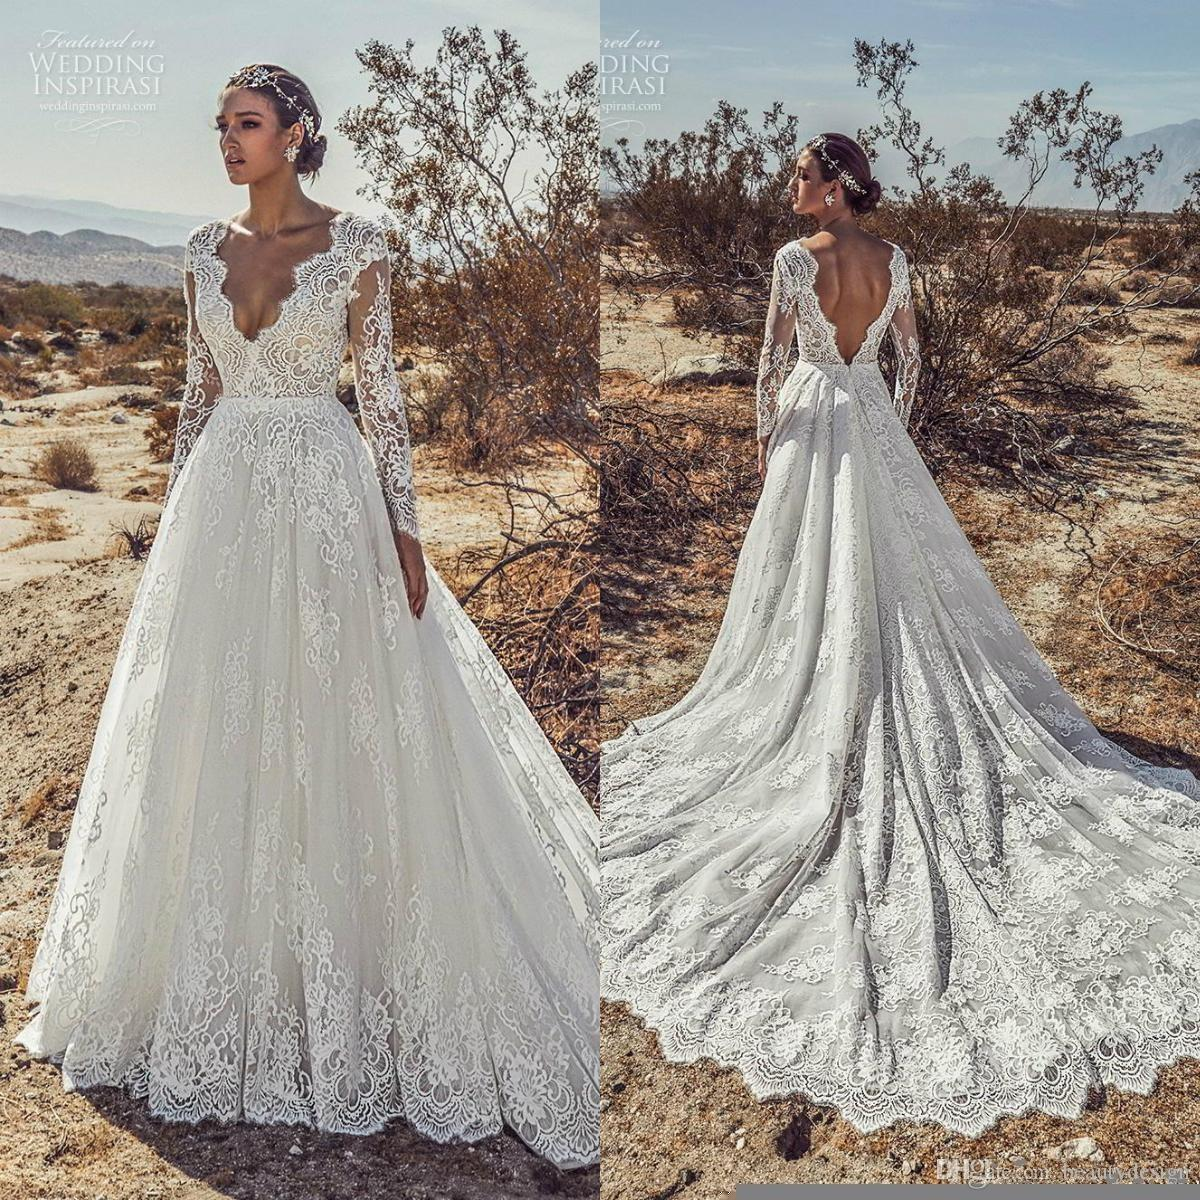 Discount Julie Vino 2019 New Beach Wedding Dresses V Neck Lace Long